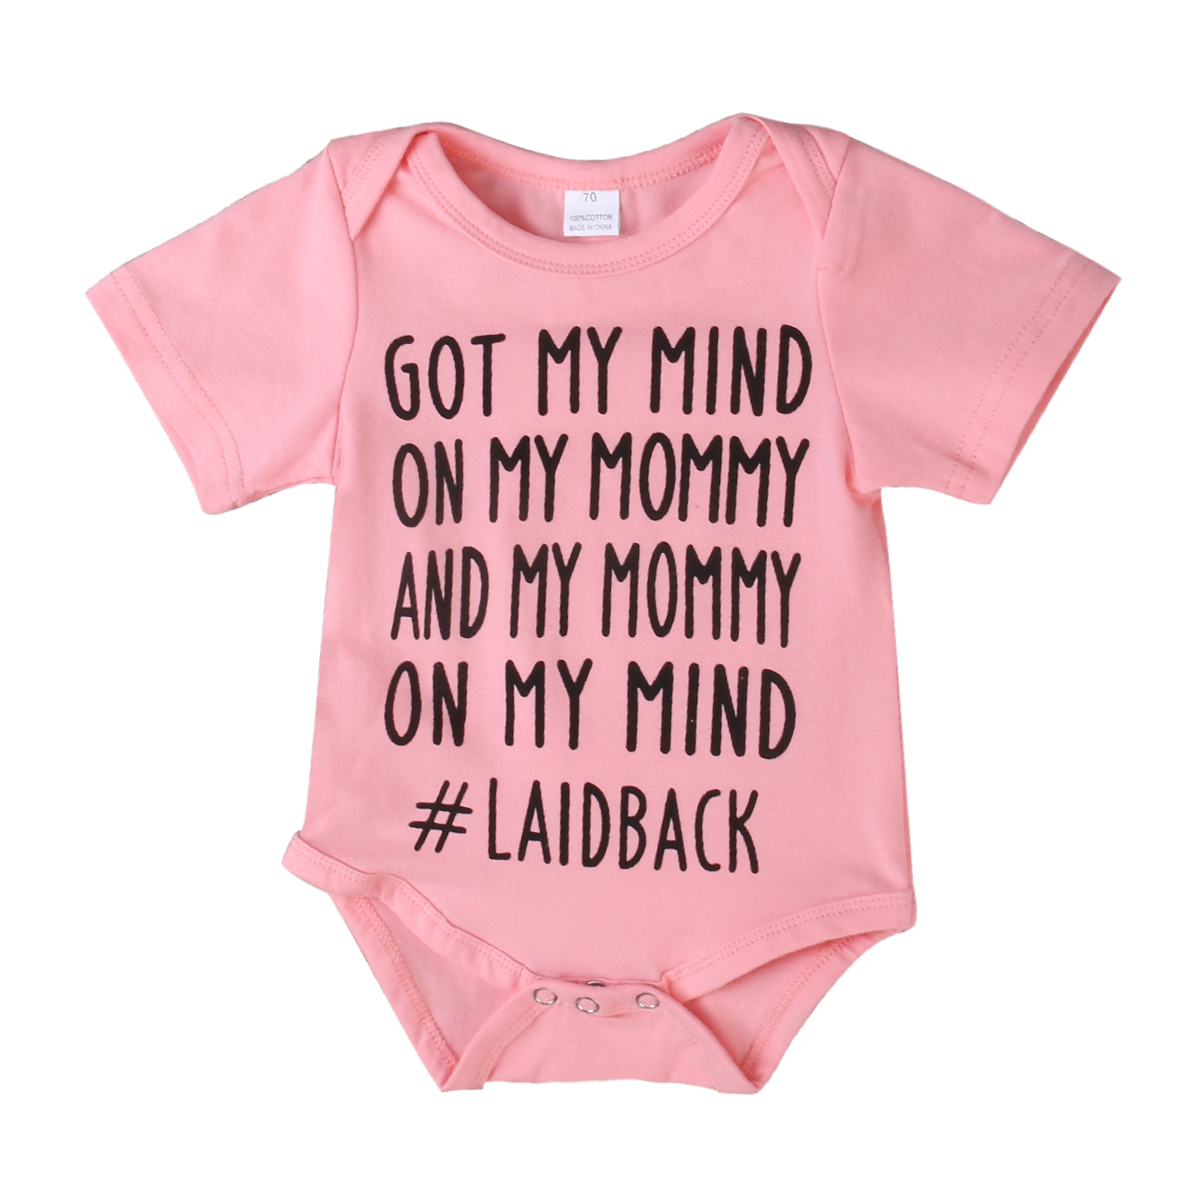 On My Mind 3 Colors Toddler Infant Baby Boys Girls Letter Cotton ...